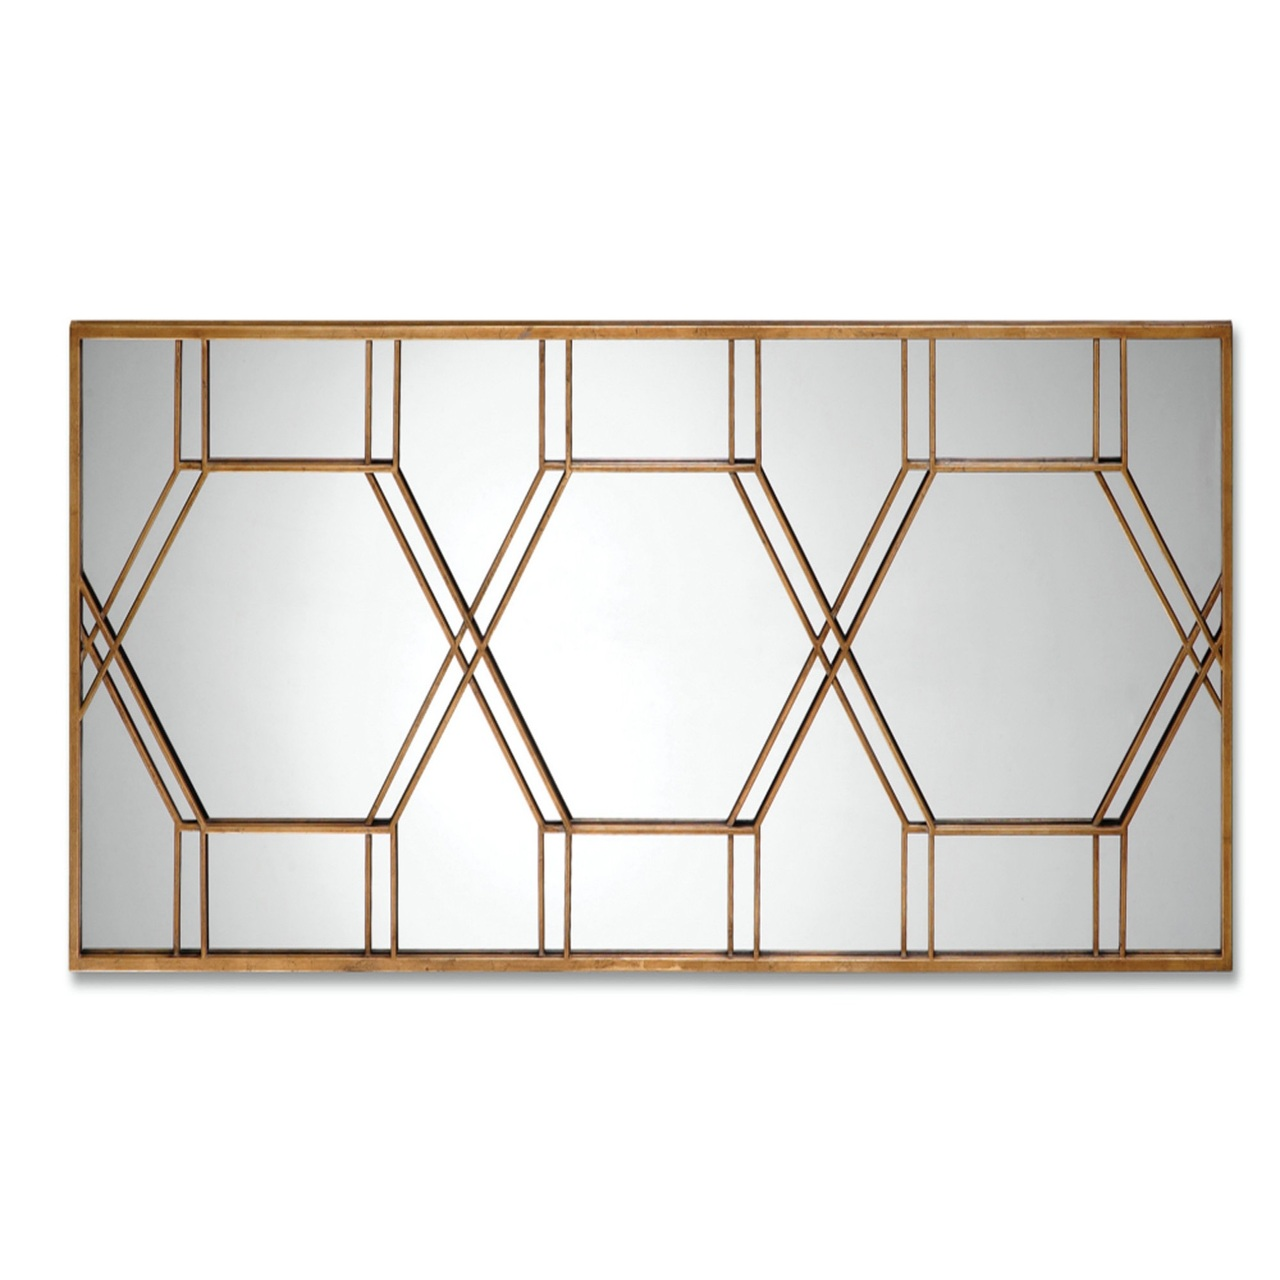 70 Decorative Rectangular Wall Mirror With Narrow Metal Antique Gold Leaf Frame 31495032